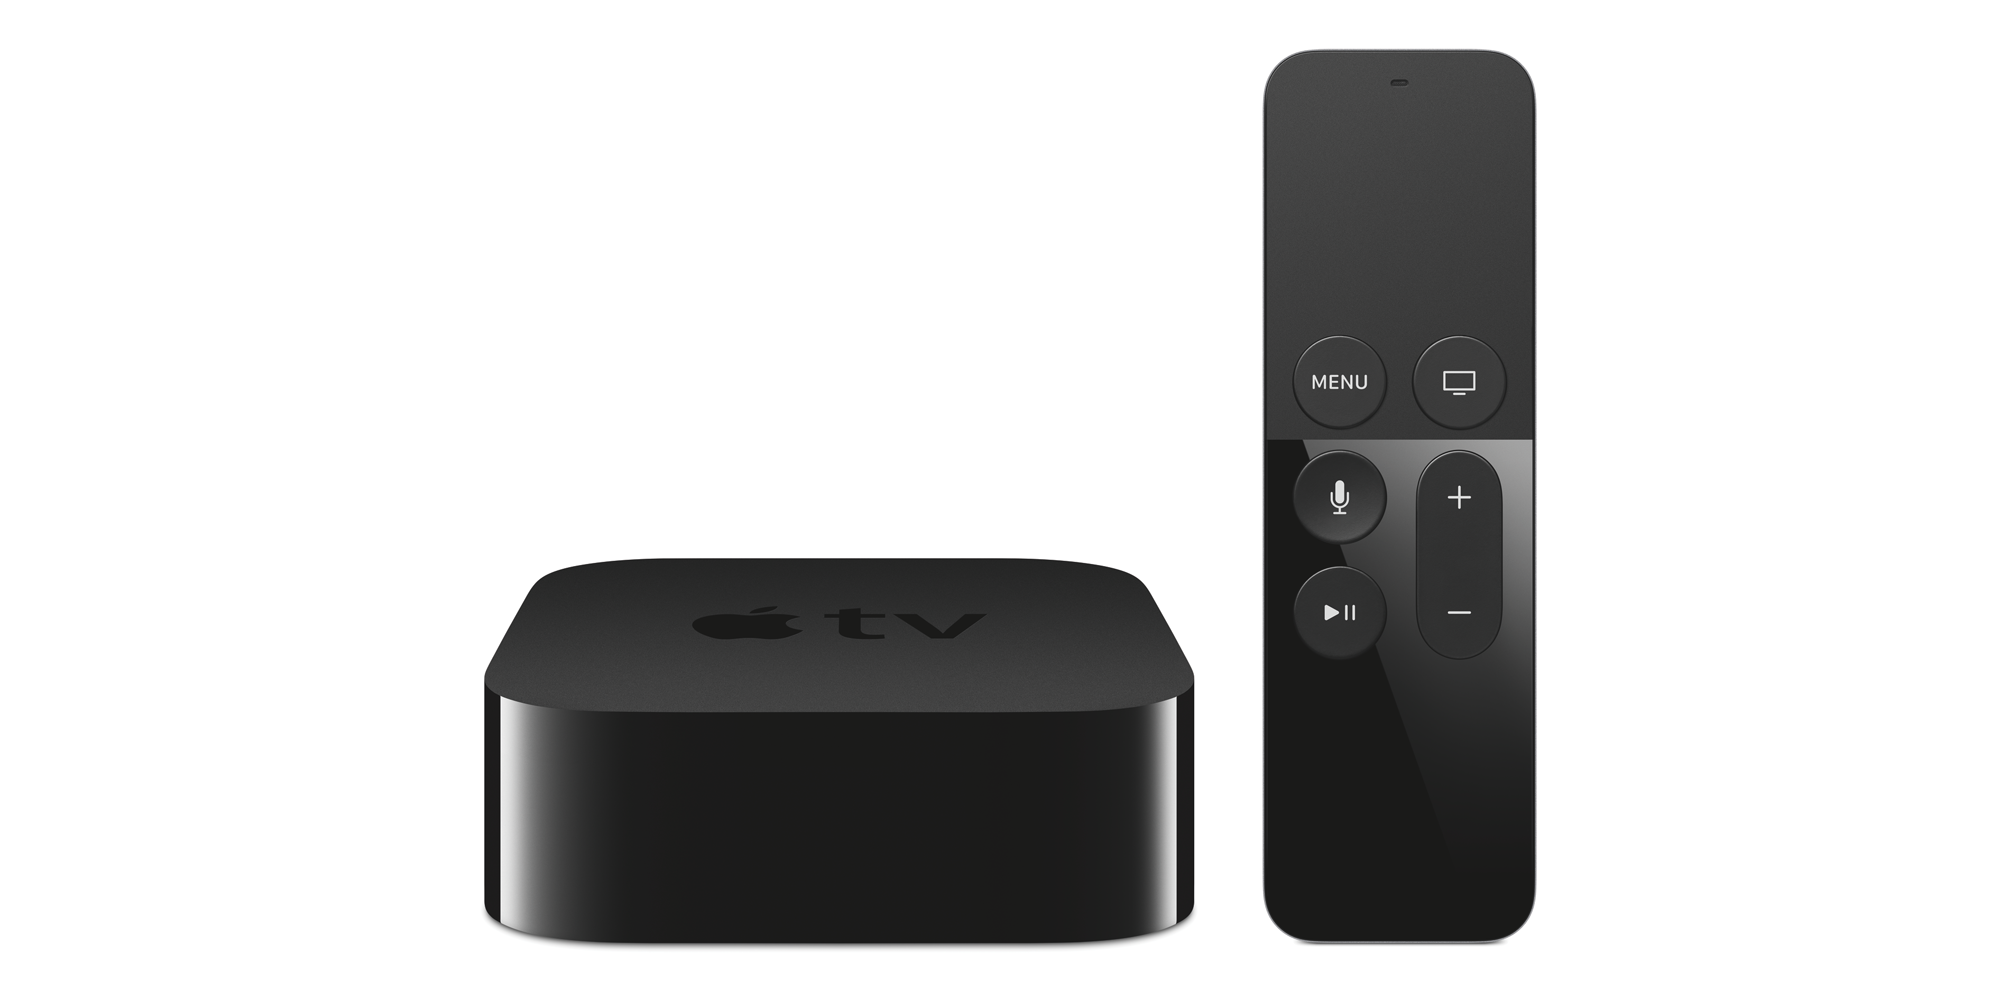 How to get subtitles on netflix using apple tv